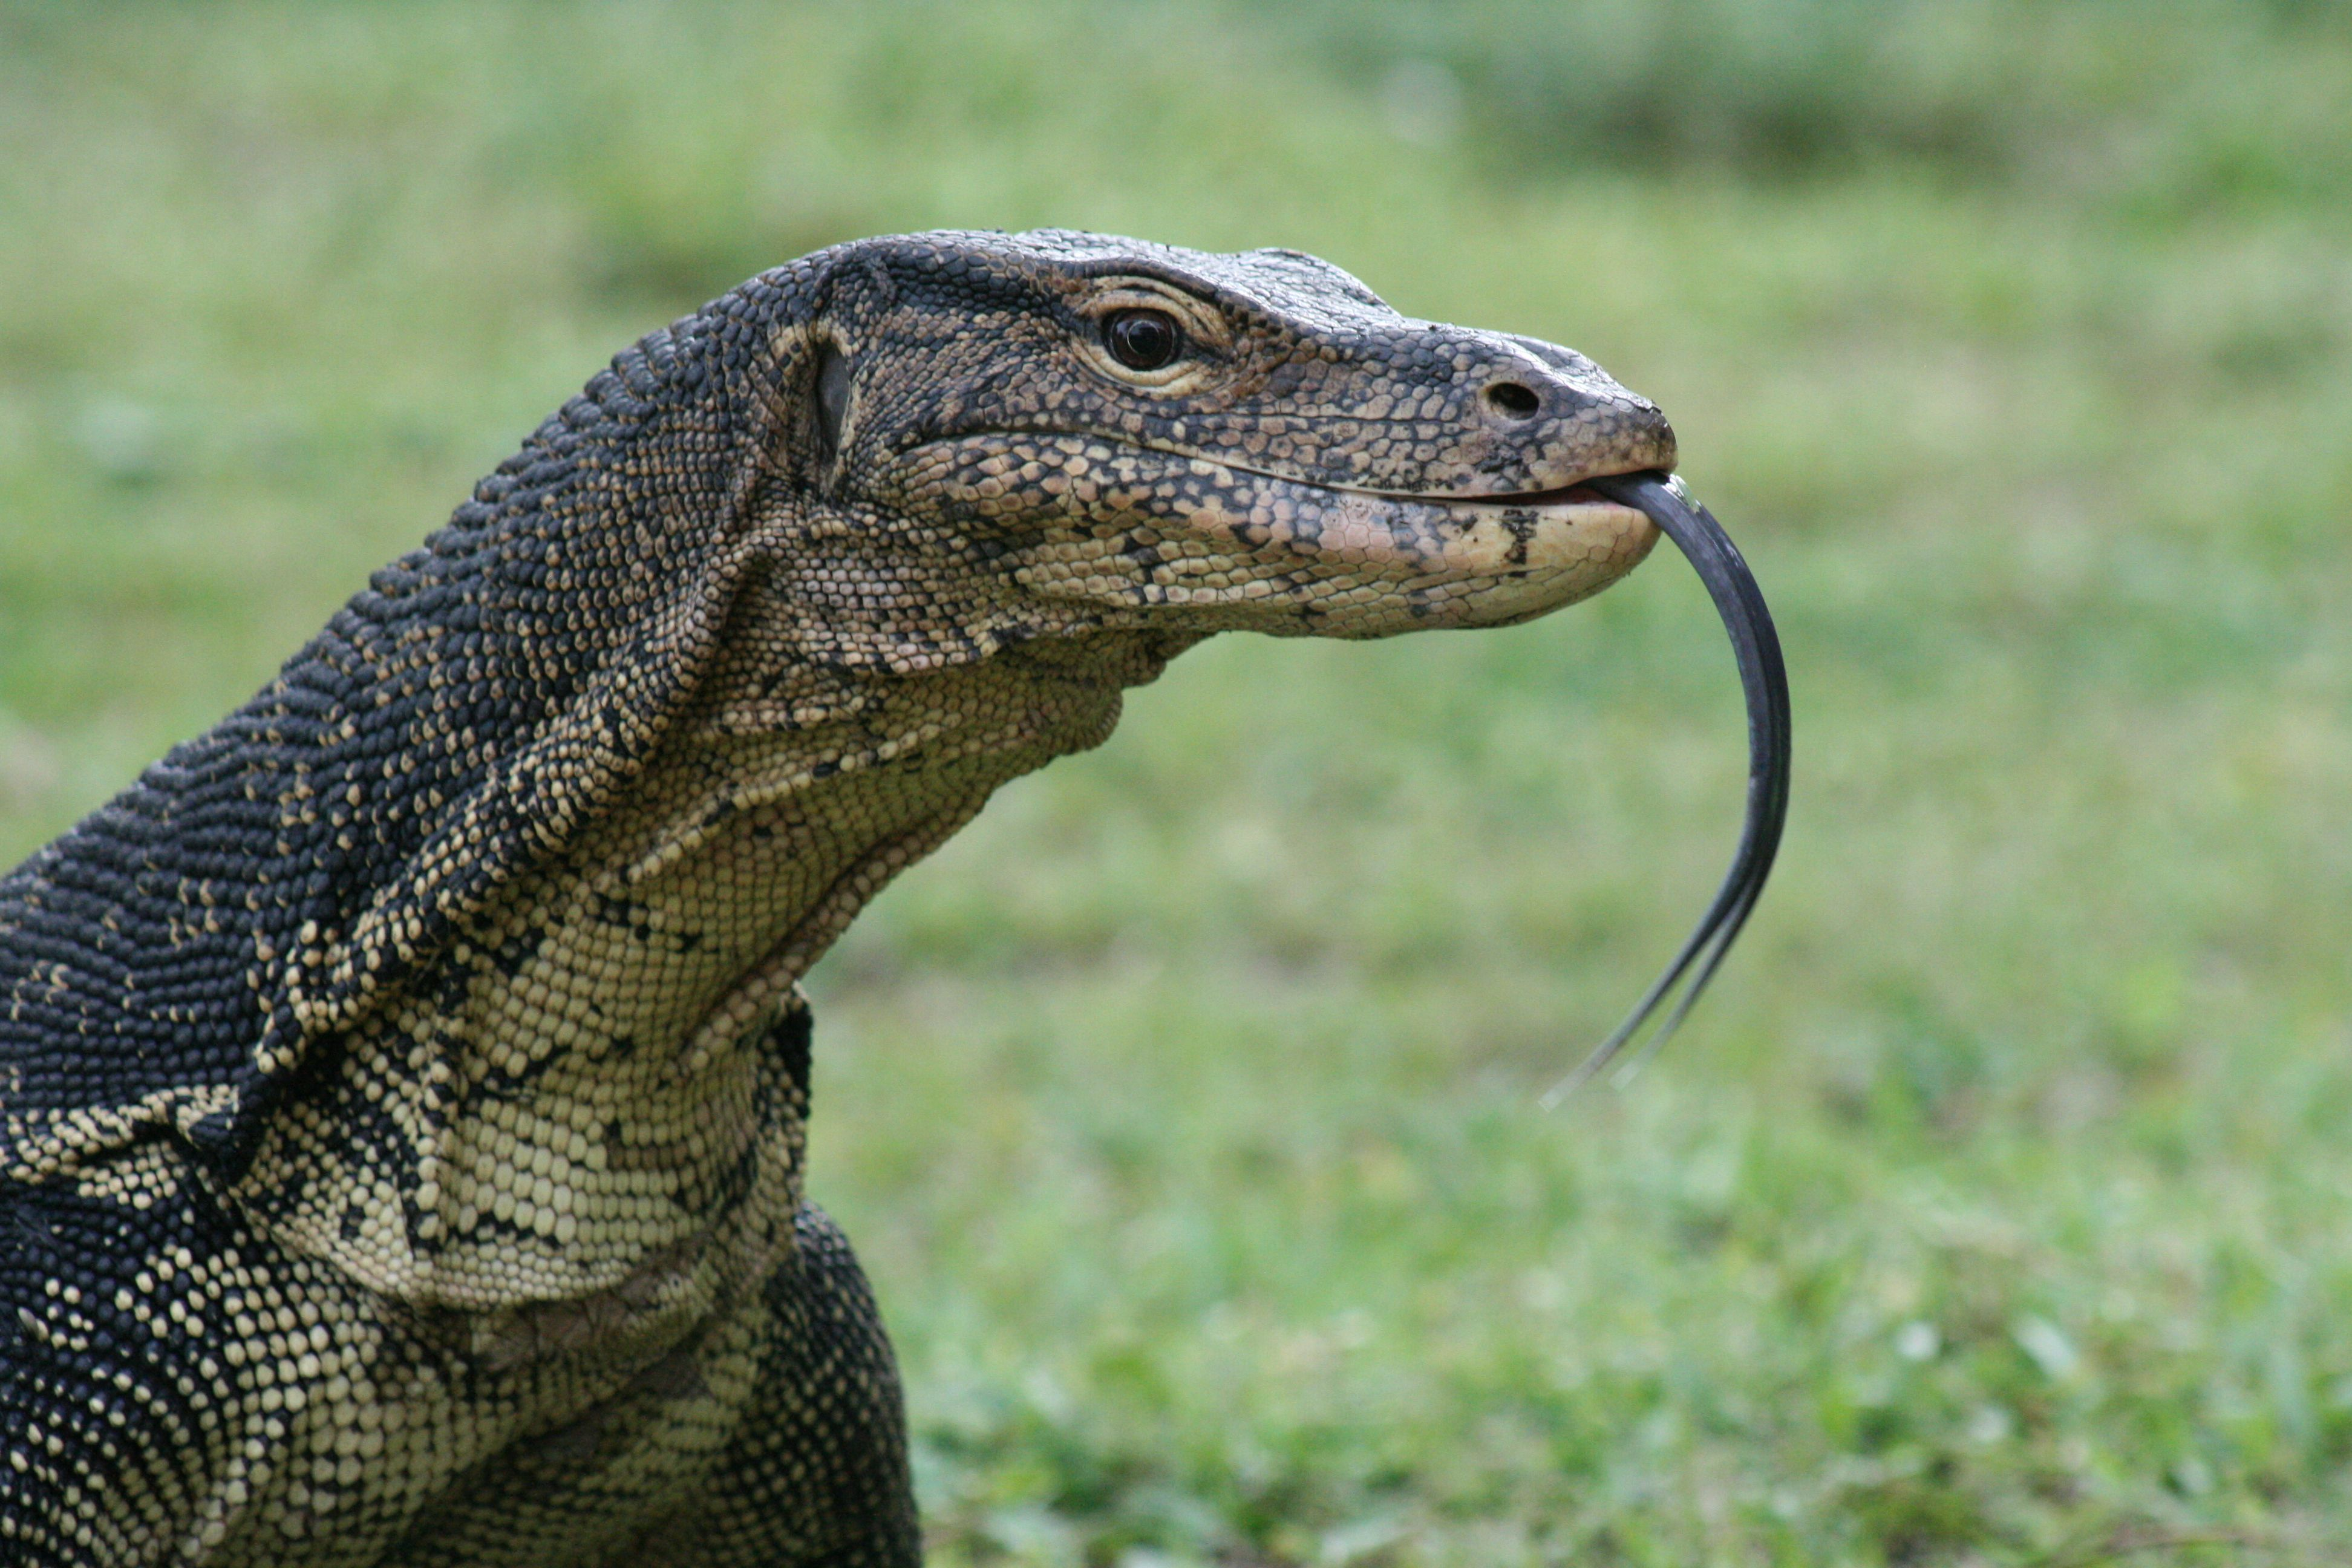 This monster Malaysian Water Monitor Lizard was about to have dinner at The Bubu Resort Pulau